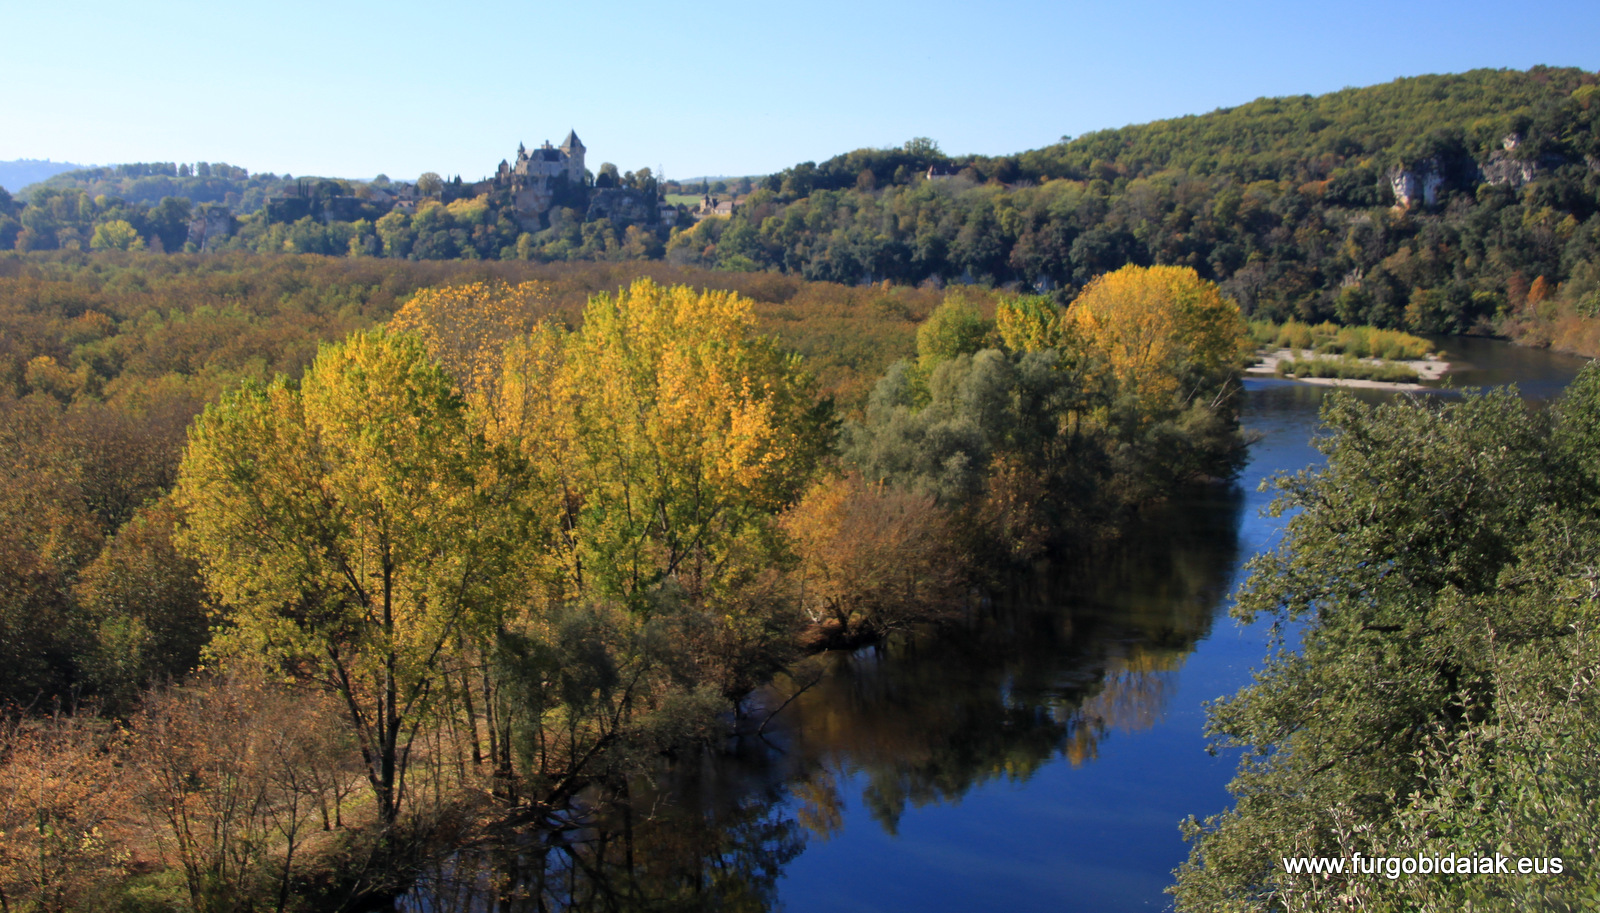 Cingle de Monfort Dordogne